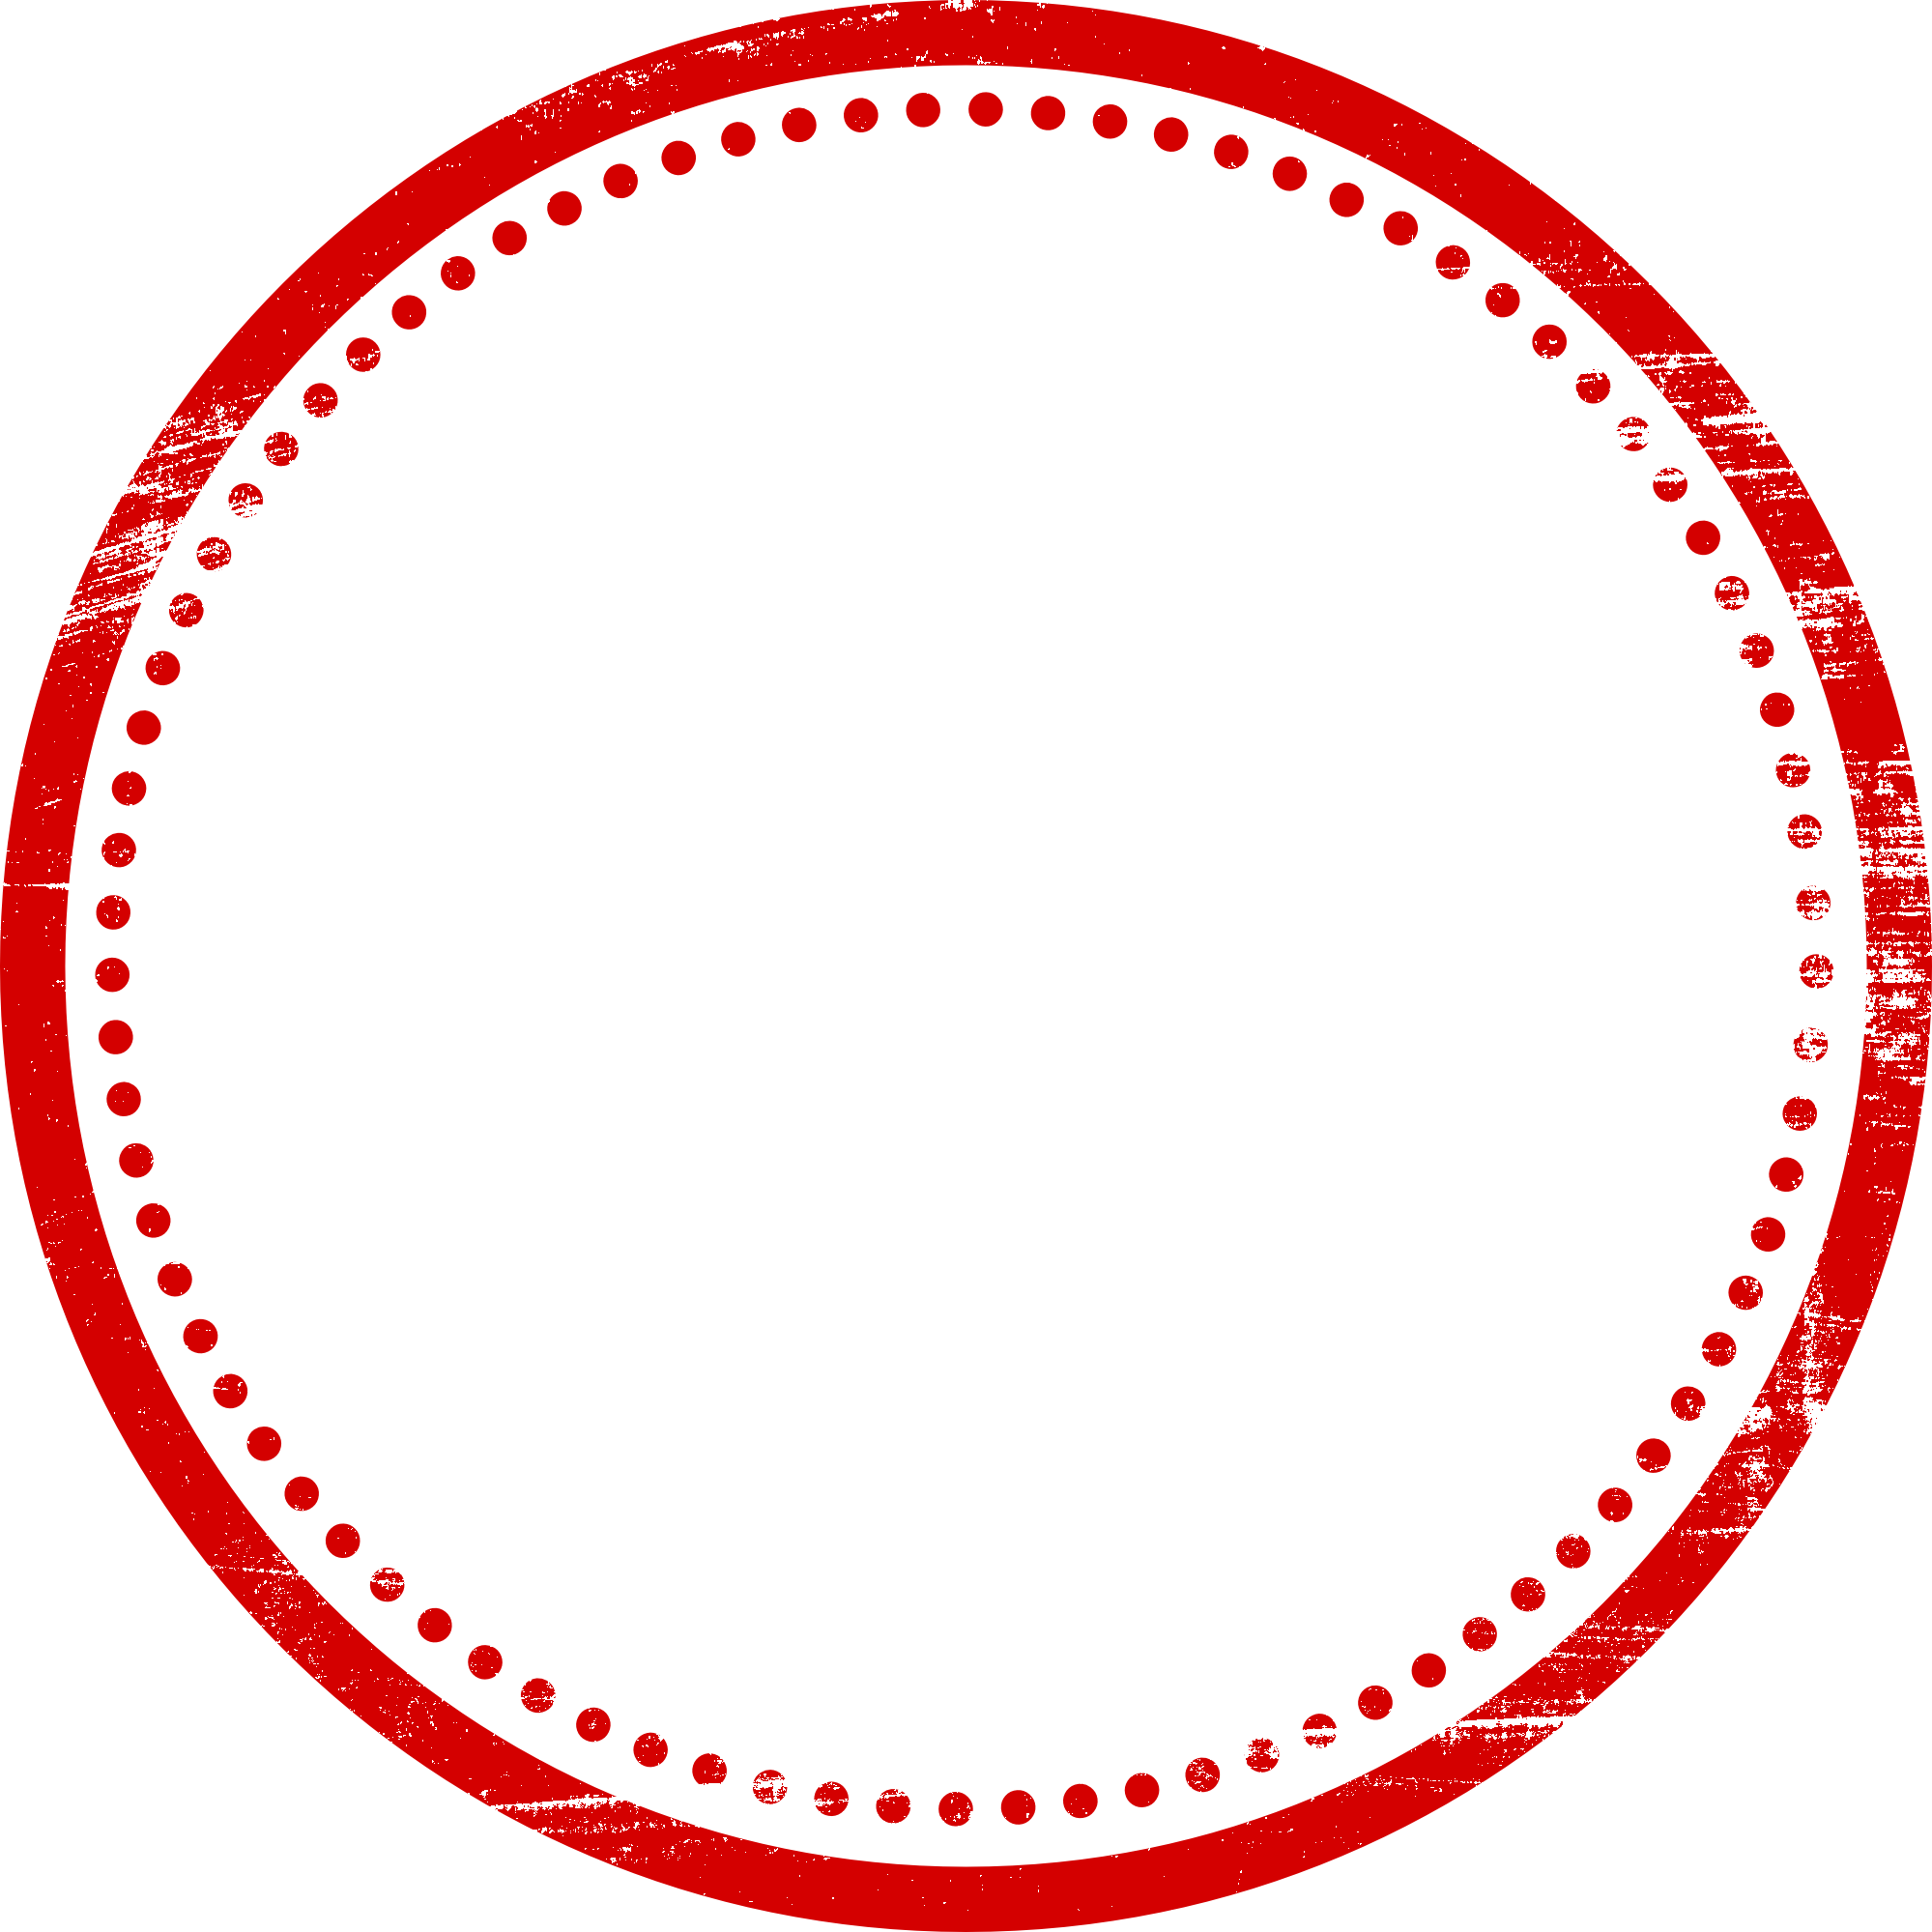 Pop vector empty. Red stamp png